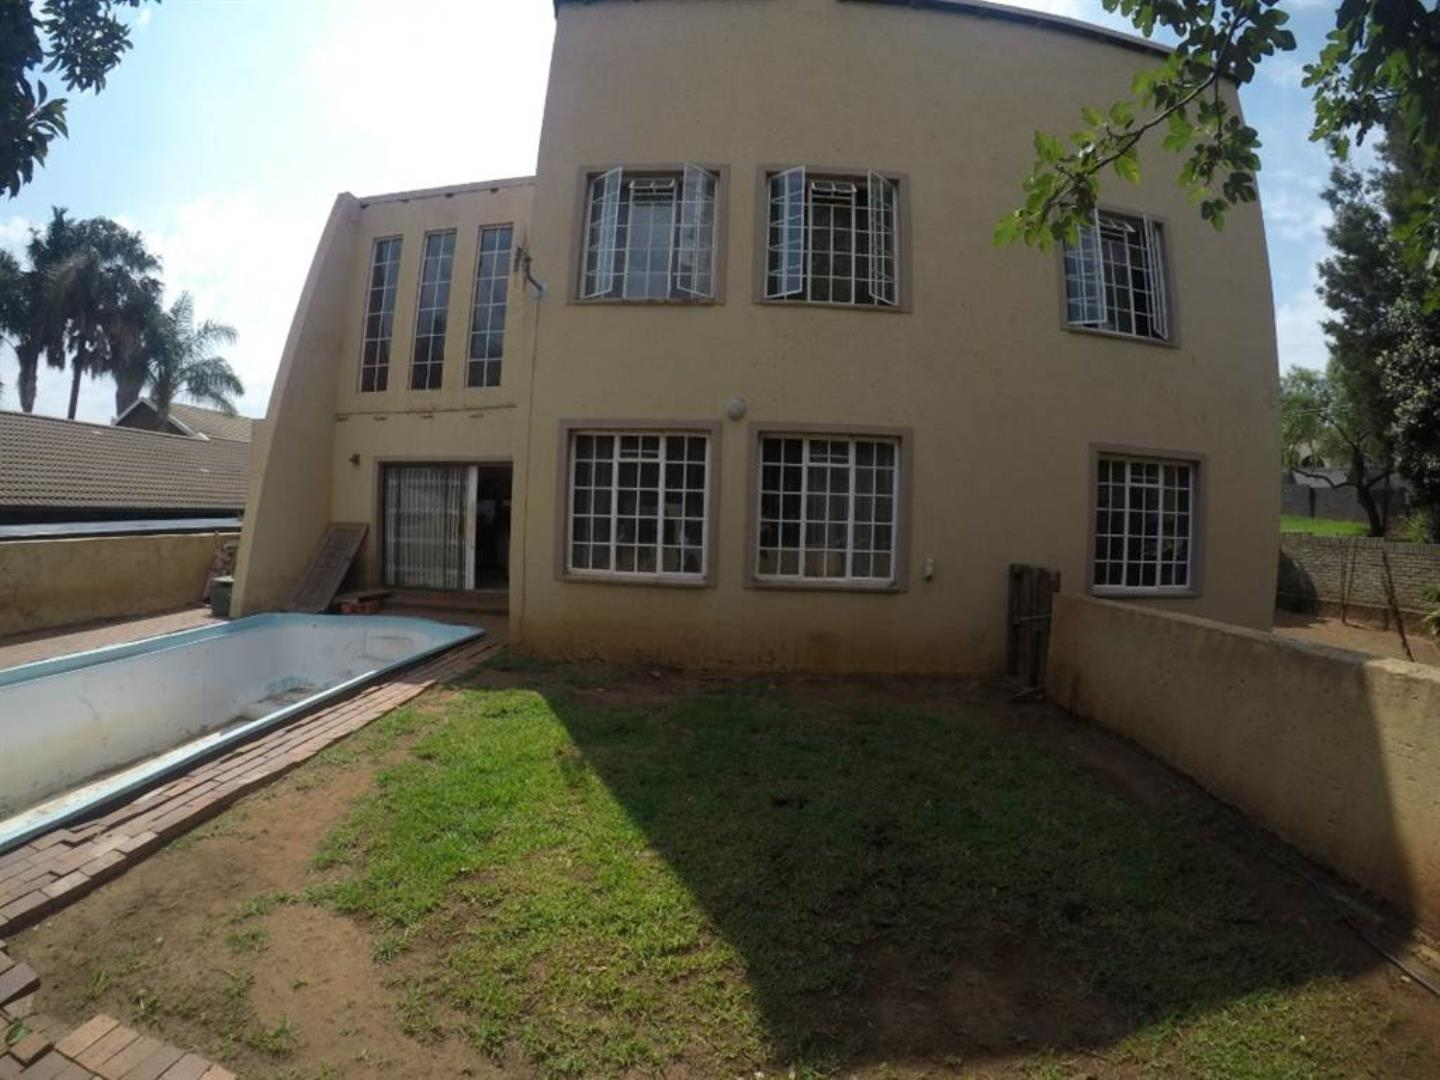 5 Bedroom House for Sale in Wilro Park, Roodepoort - Gauteng